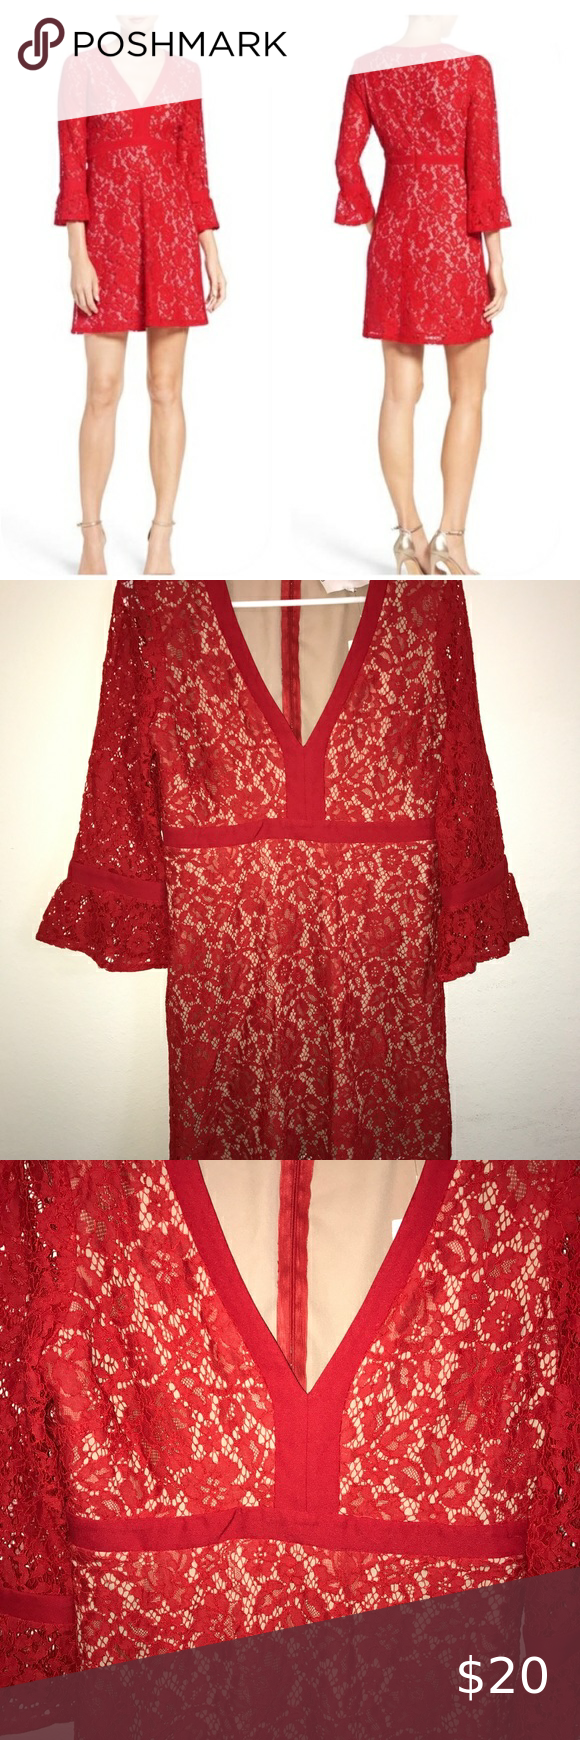 Copy Nordstrom Charles Henry Lace Red Dress Red Lace Dress Red Dress Nordstrom Dresses [ 1740 x 580 Pixel ]